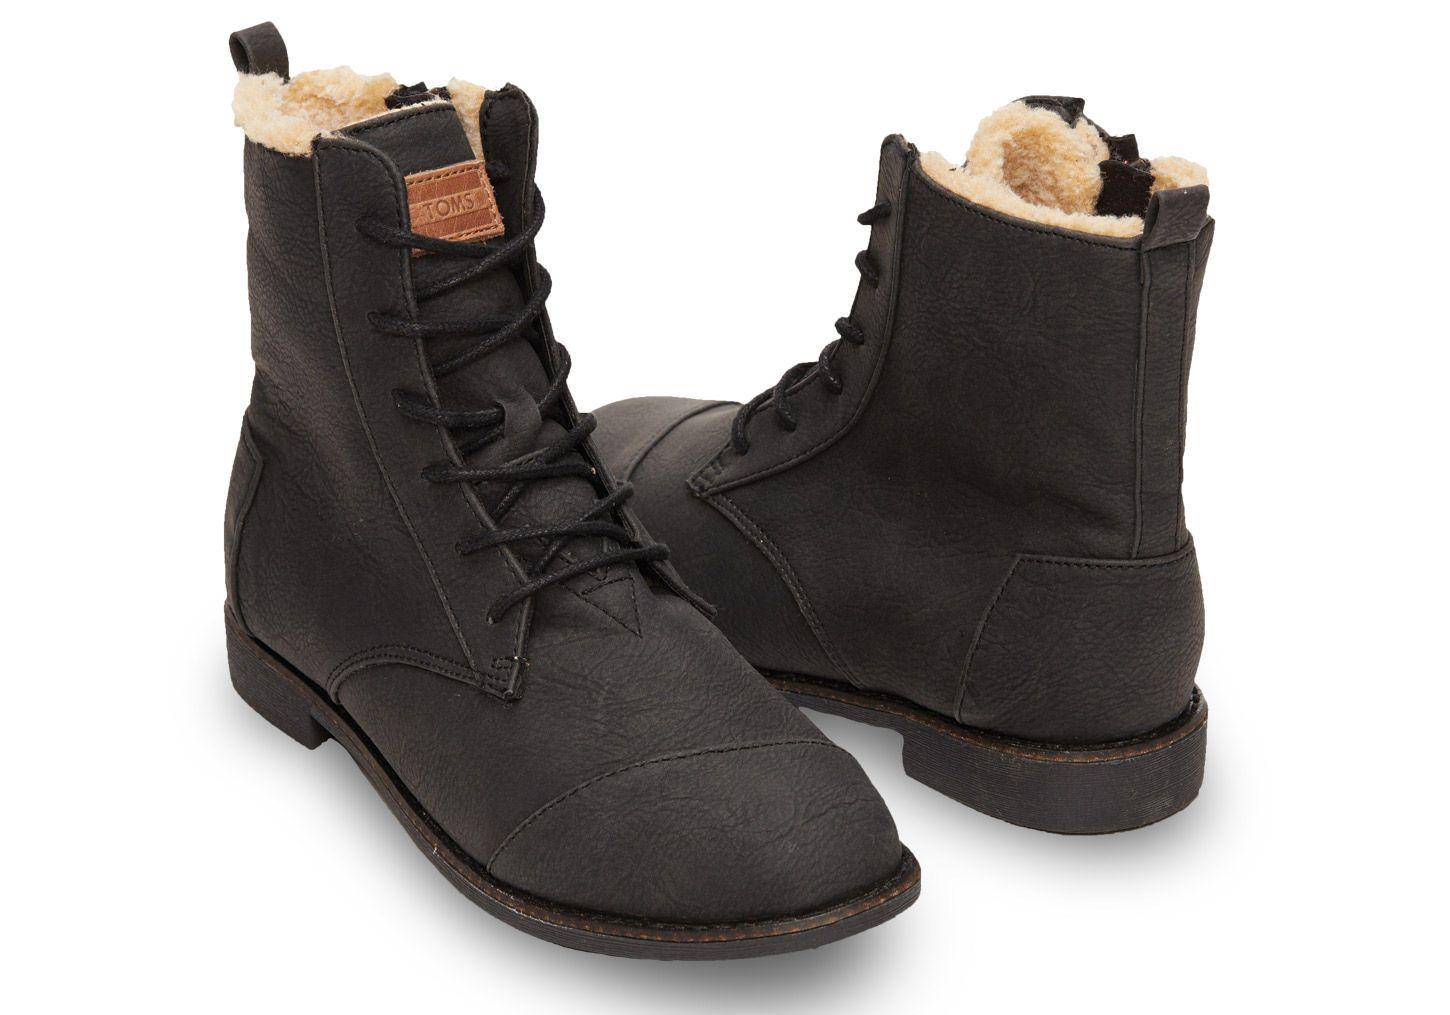 Partners in adventure. TOMS Alpa boots with warm, cozy lining ...